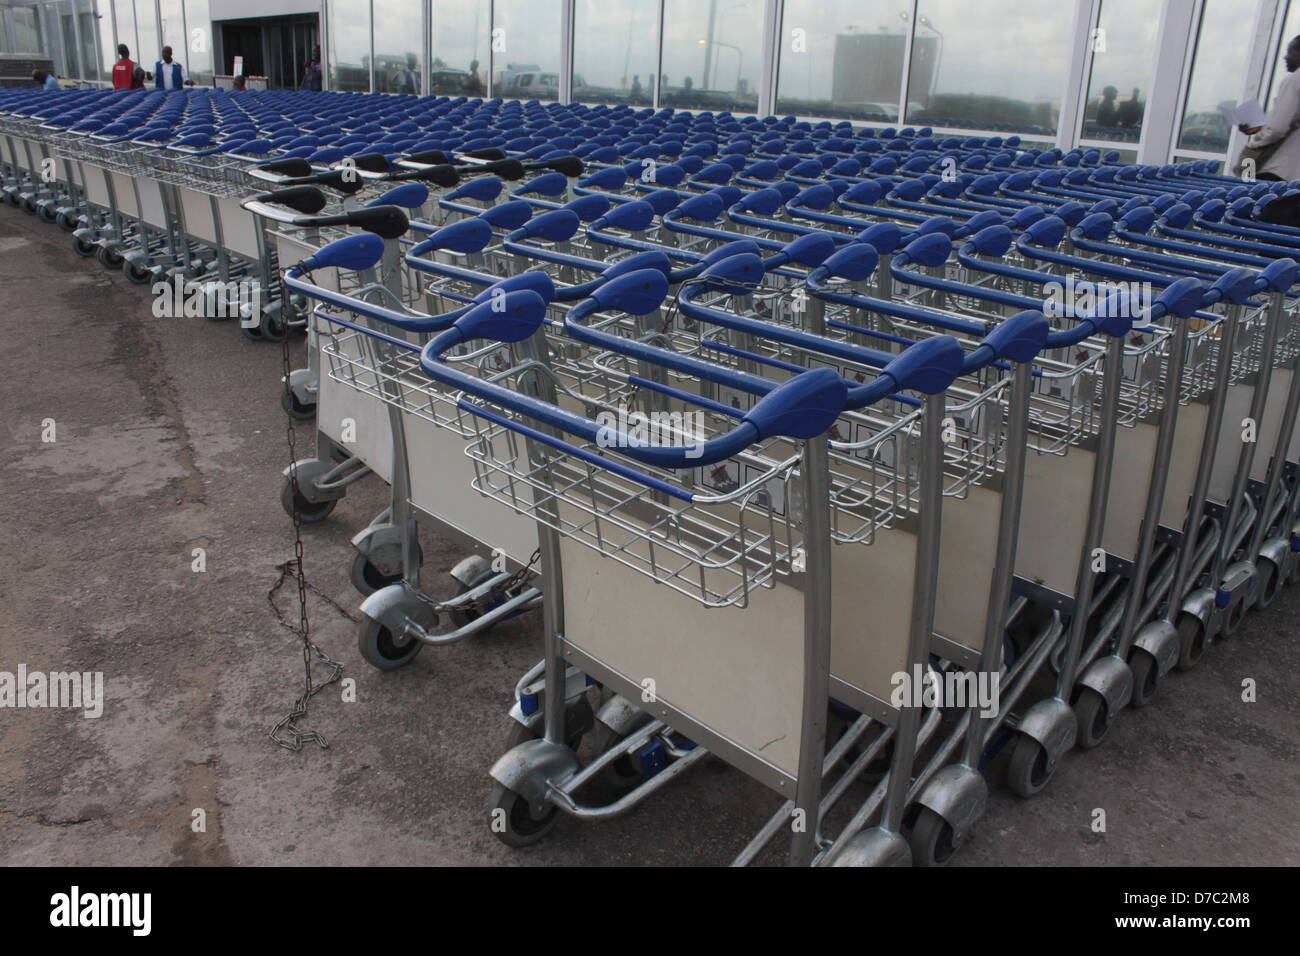 Baggage Trolley chained together at the front of remodeled Murtala Muhammed International Airport Terminal, Lagos, Stock Photo